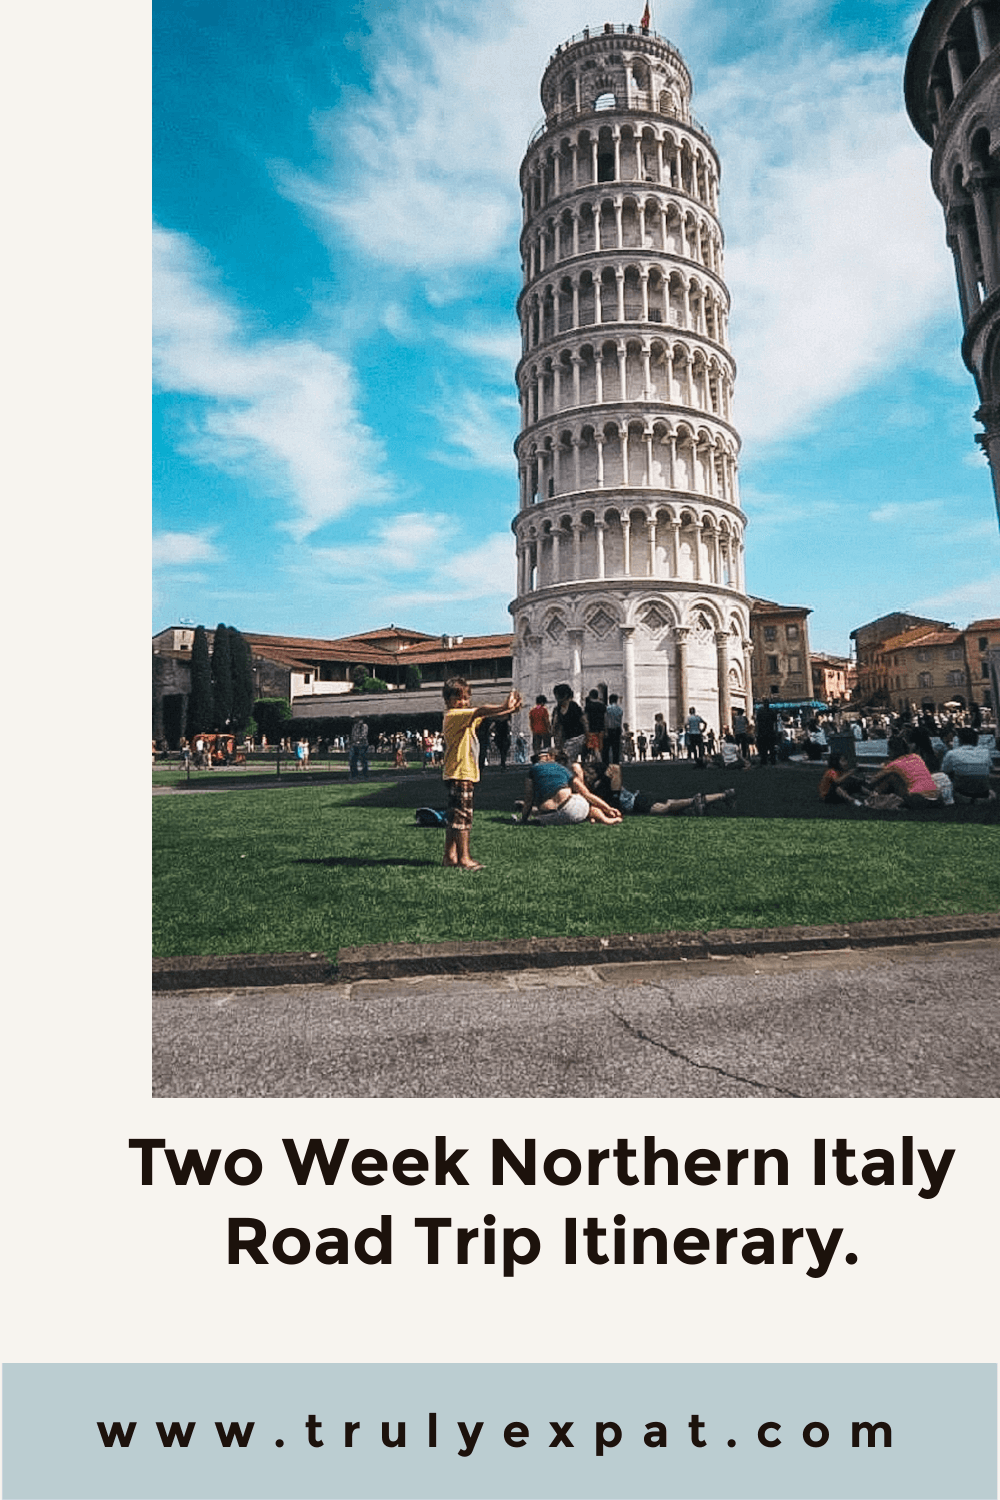 Two week Northern Italy road trip itinerary